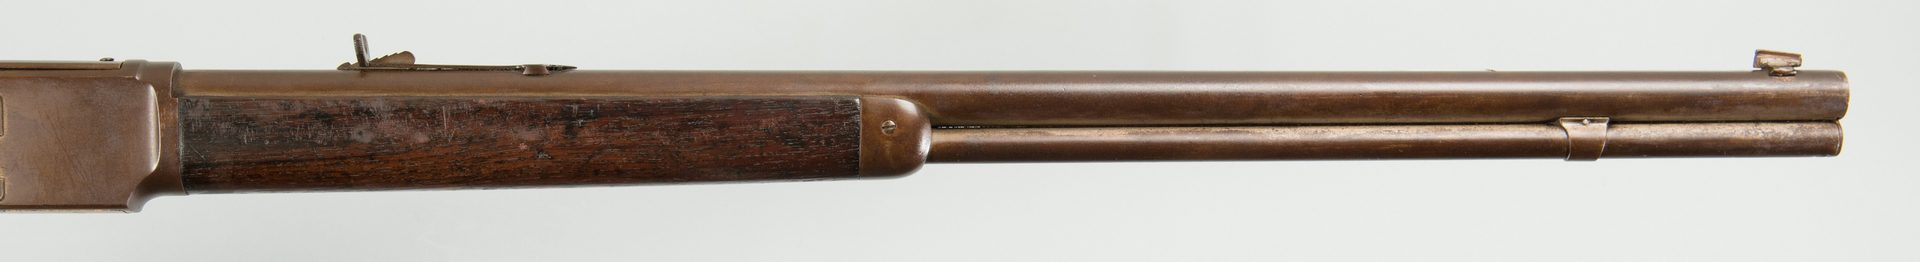 Lot 800: Winchester Model 1873, 32-20 Win Lever Action Rifle